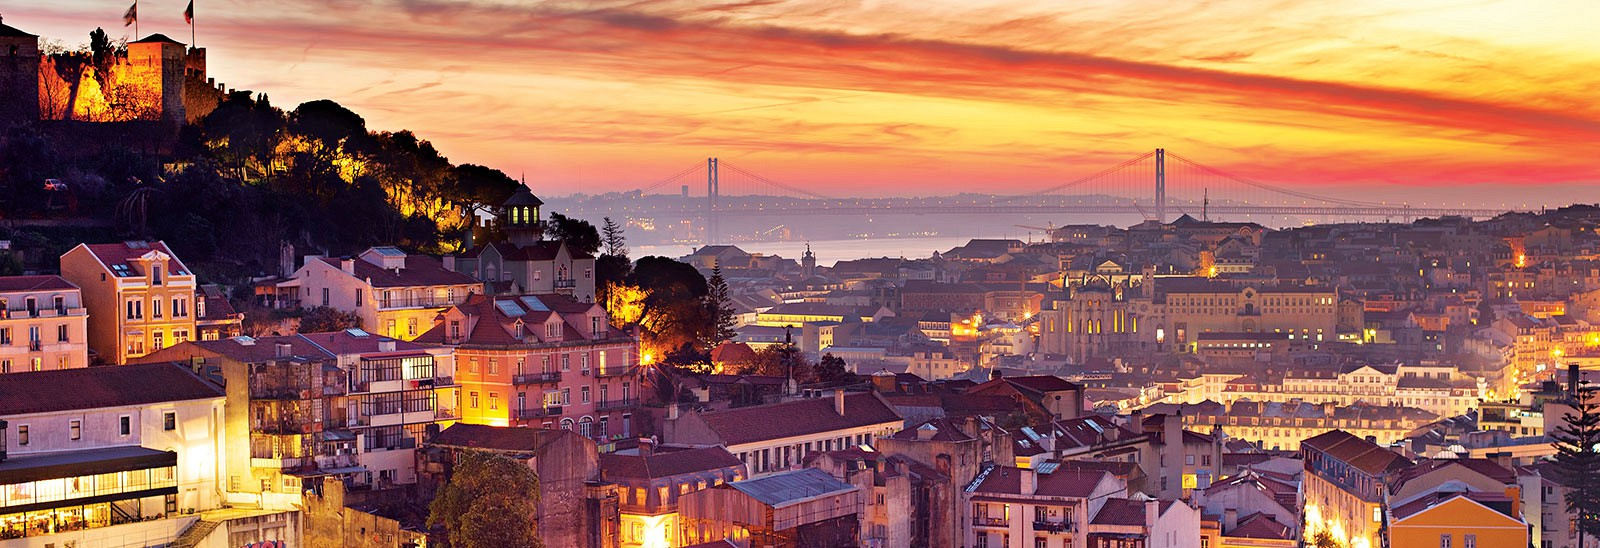 Gourmet guide: Why Lisbon is a foodie's paradise